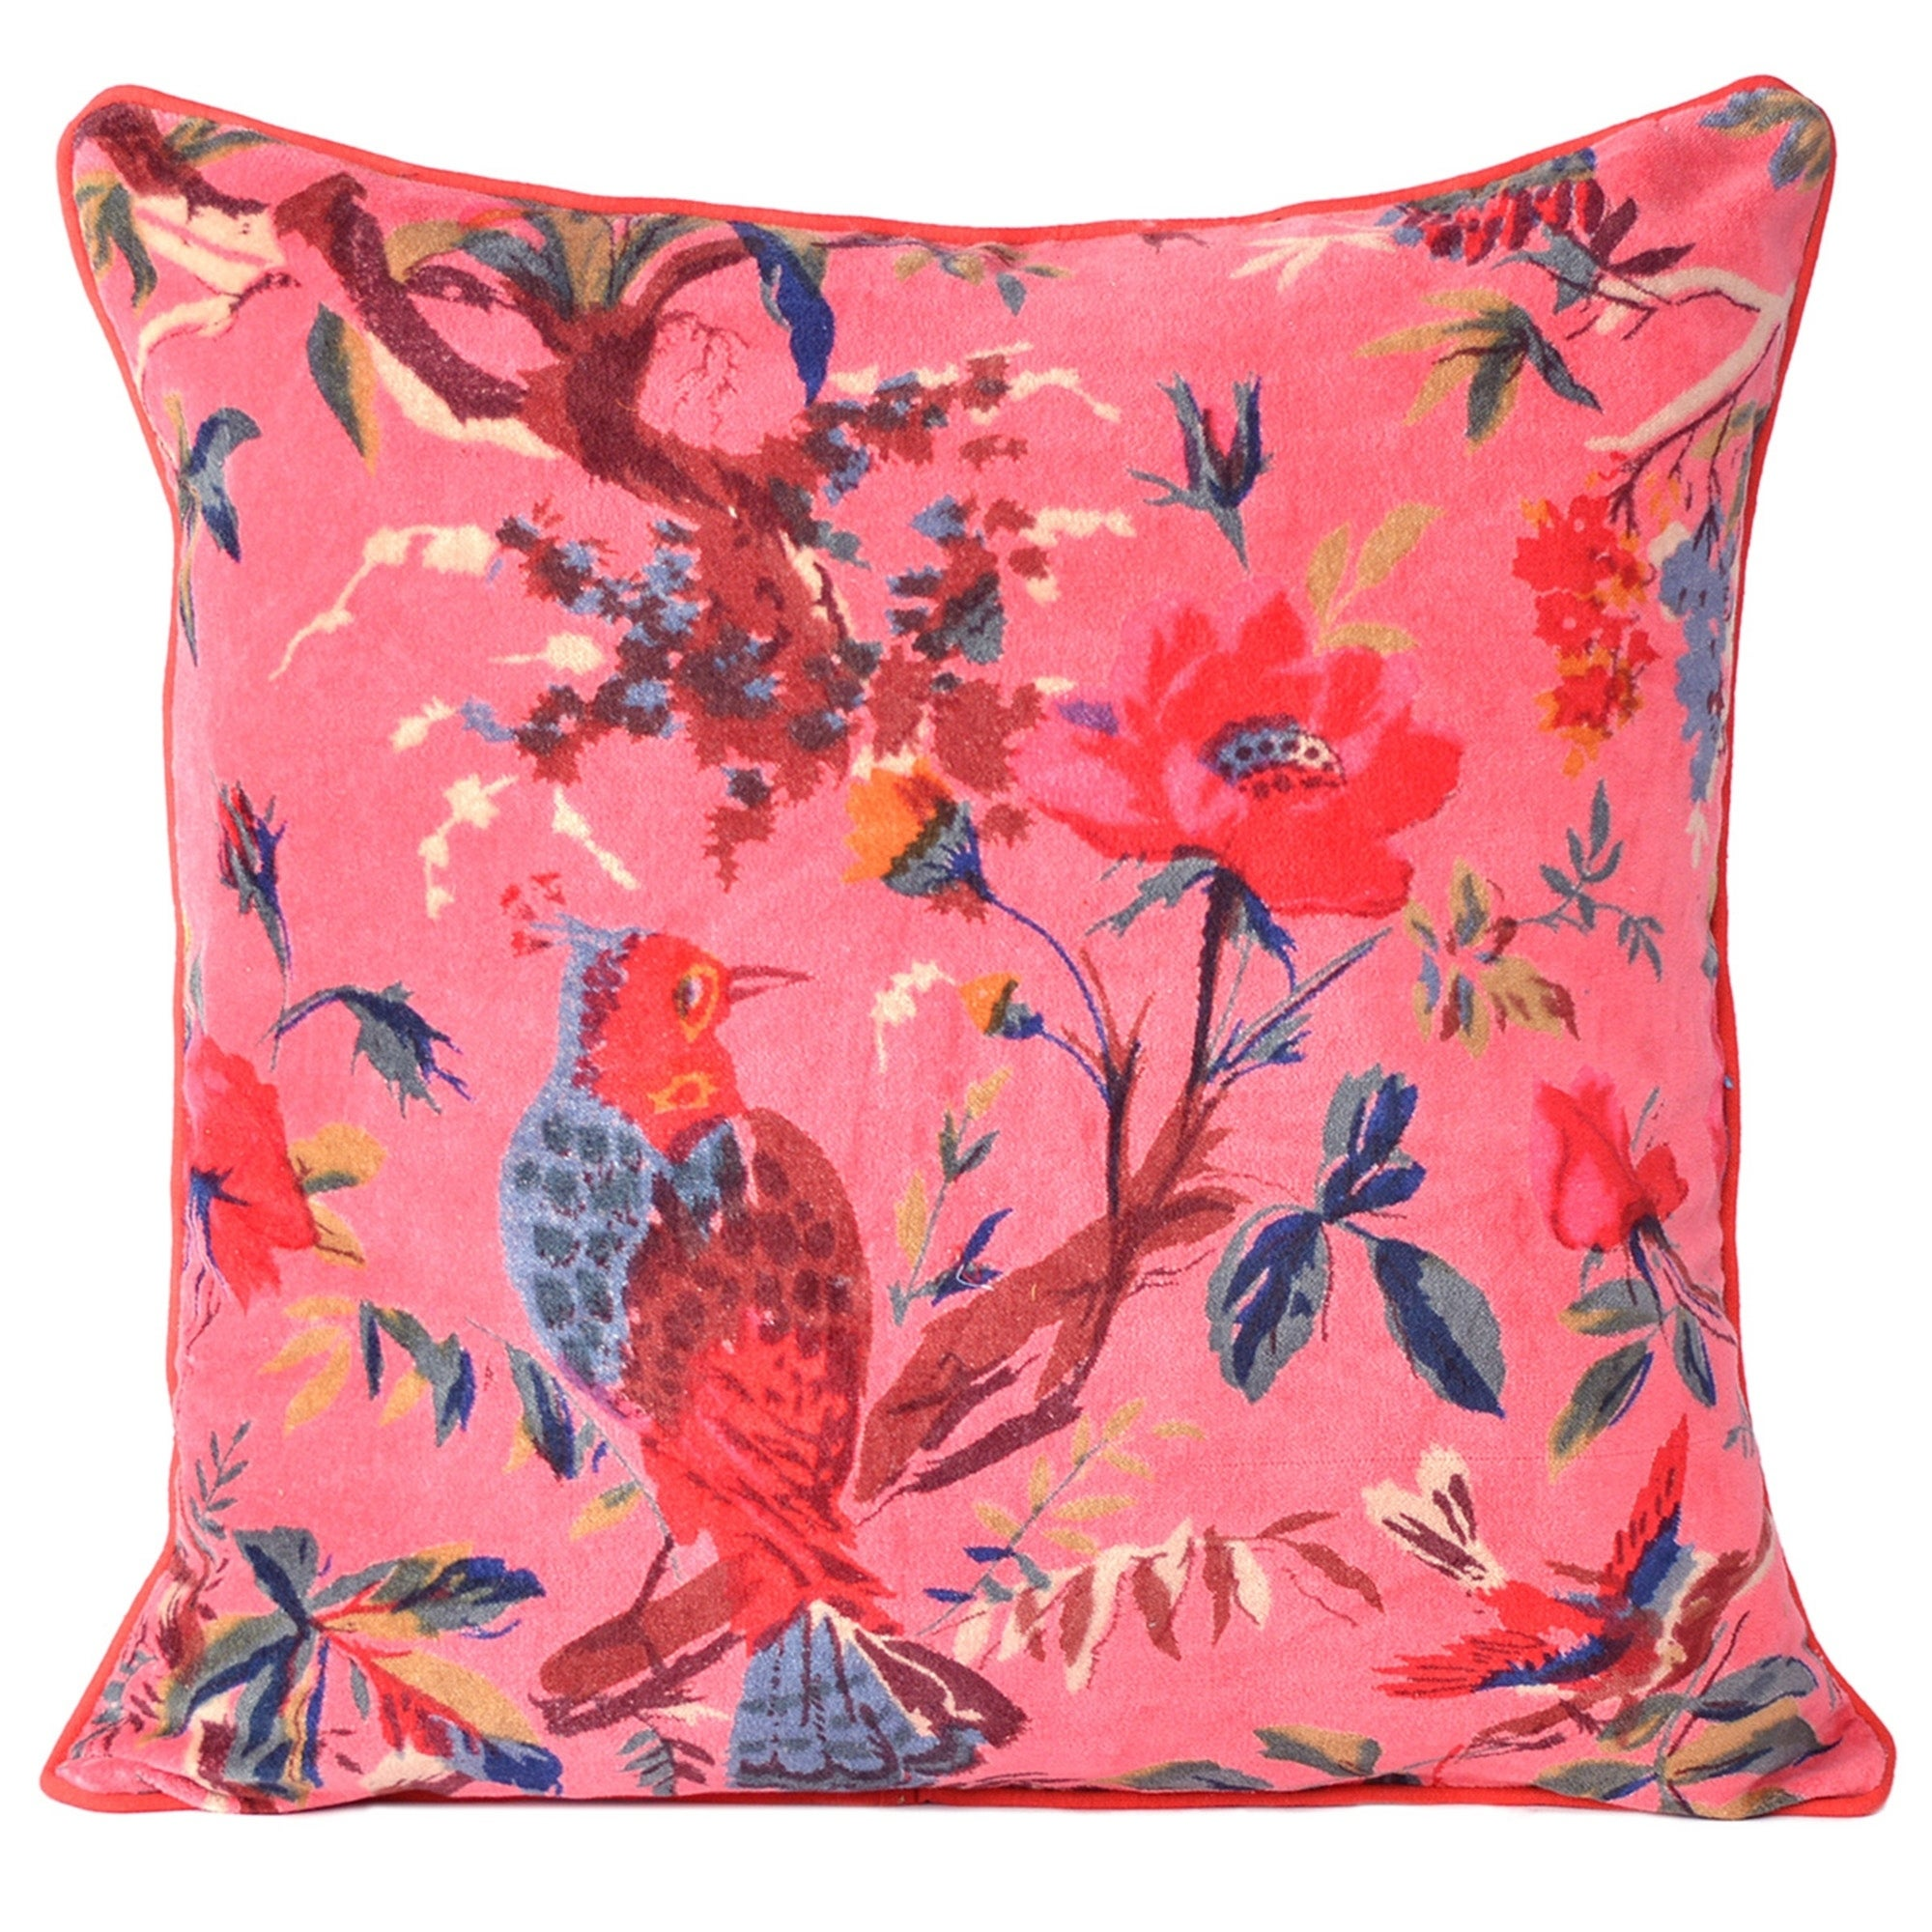 Velvet Throw Pillow Case Cushion Cover Home Sofa Decorative 16 X Inch Pink